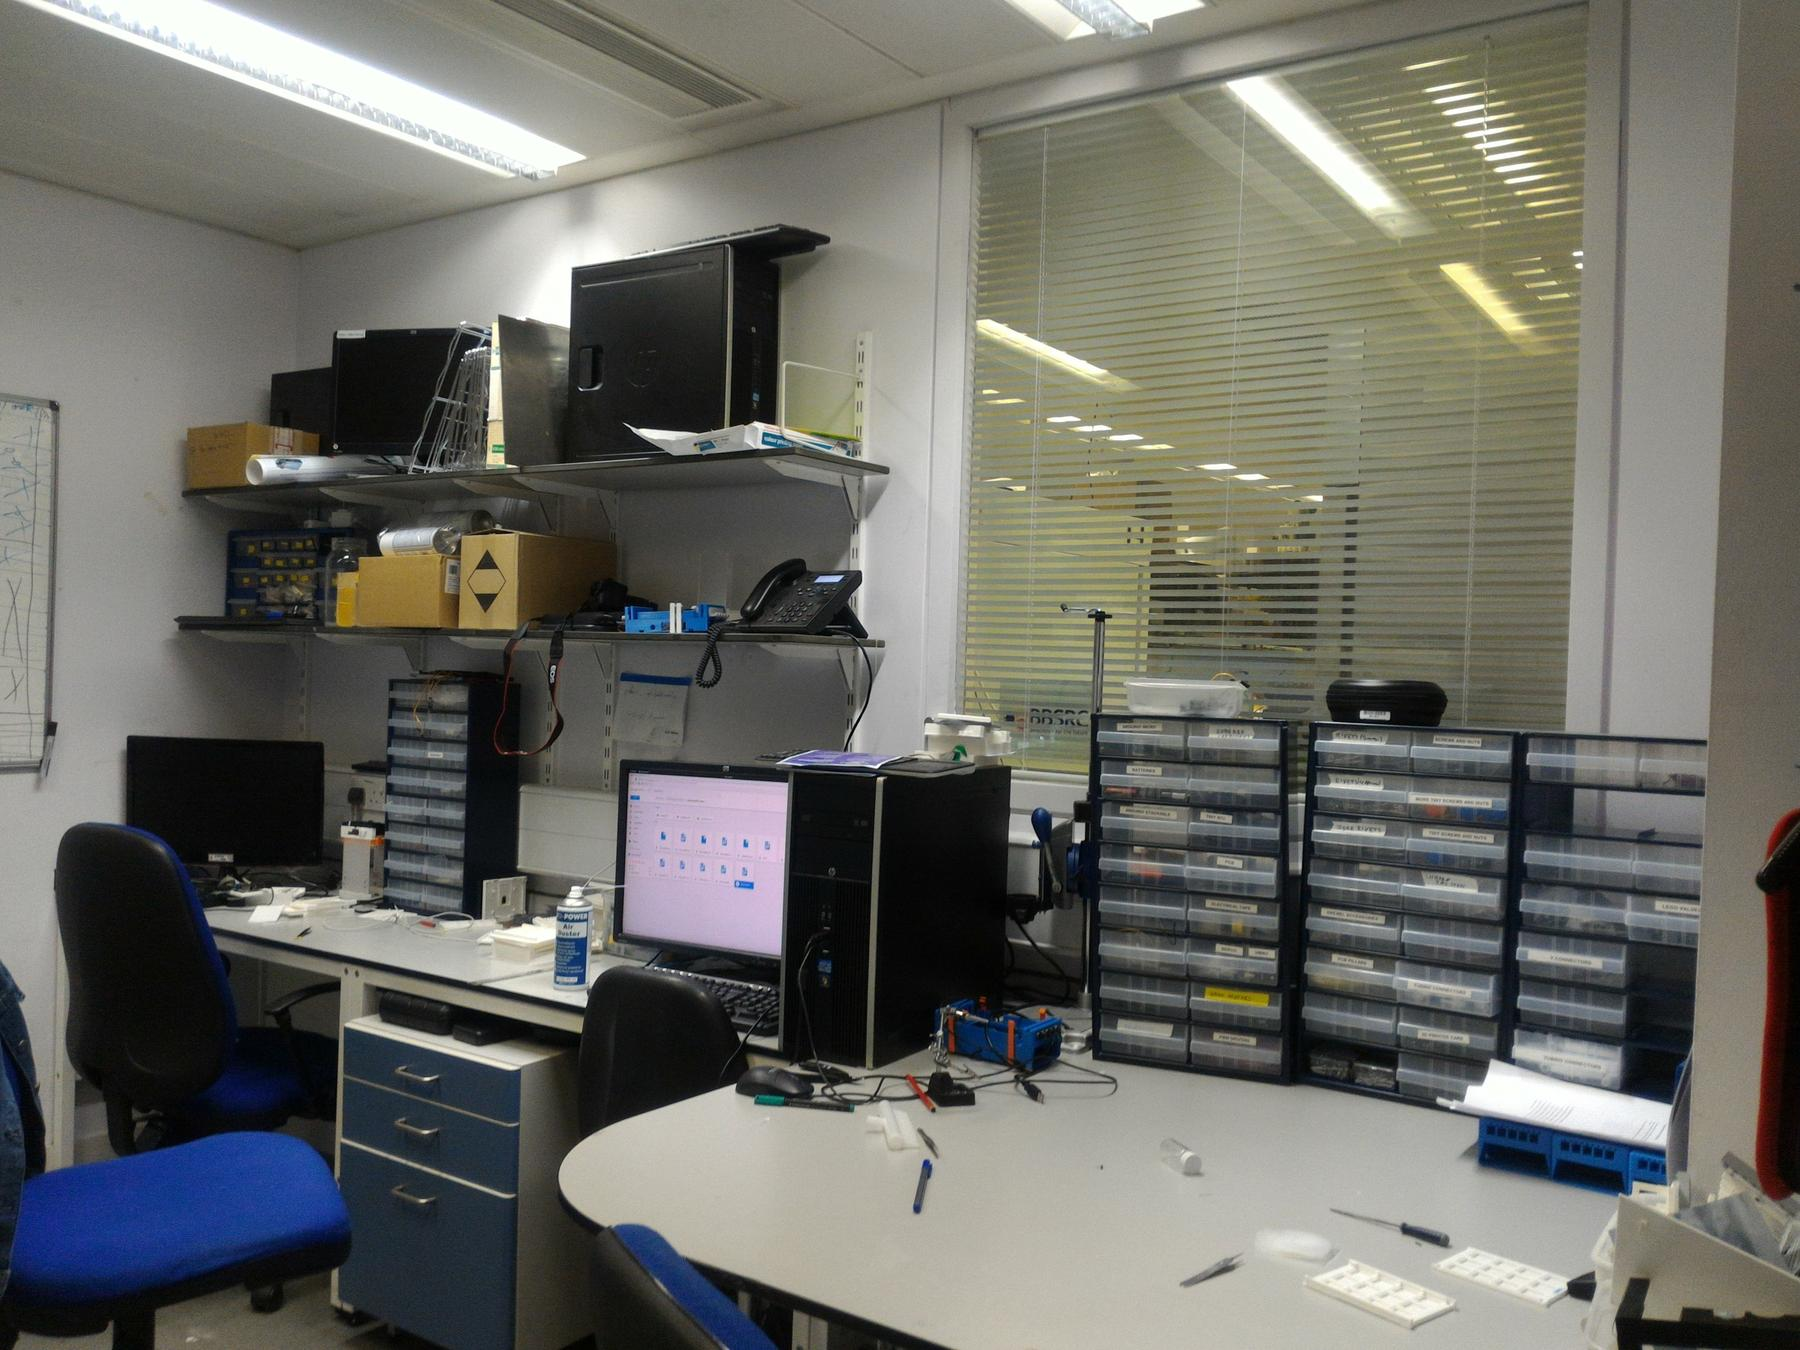 Another view of the hackspace (in unusual pristine and not messy conditions)